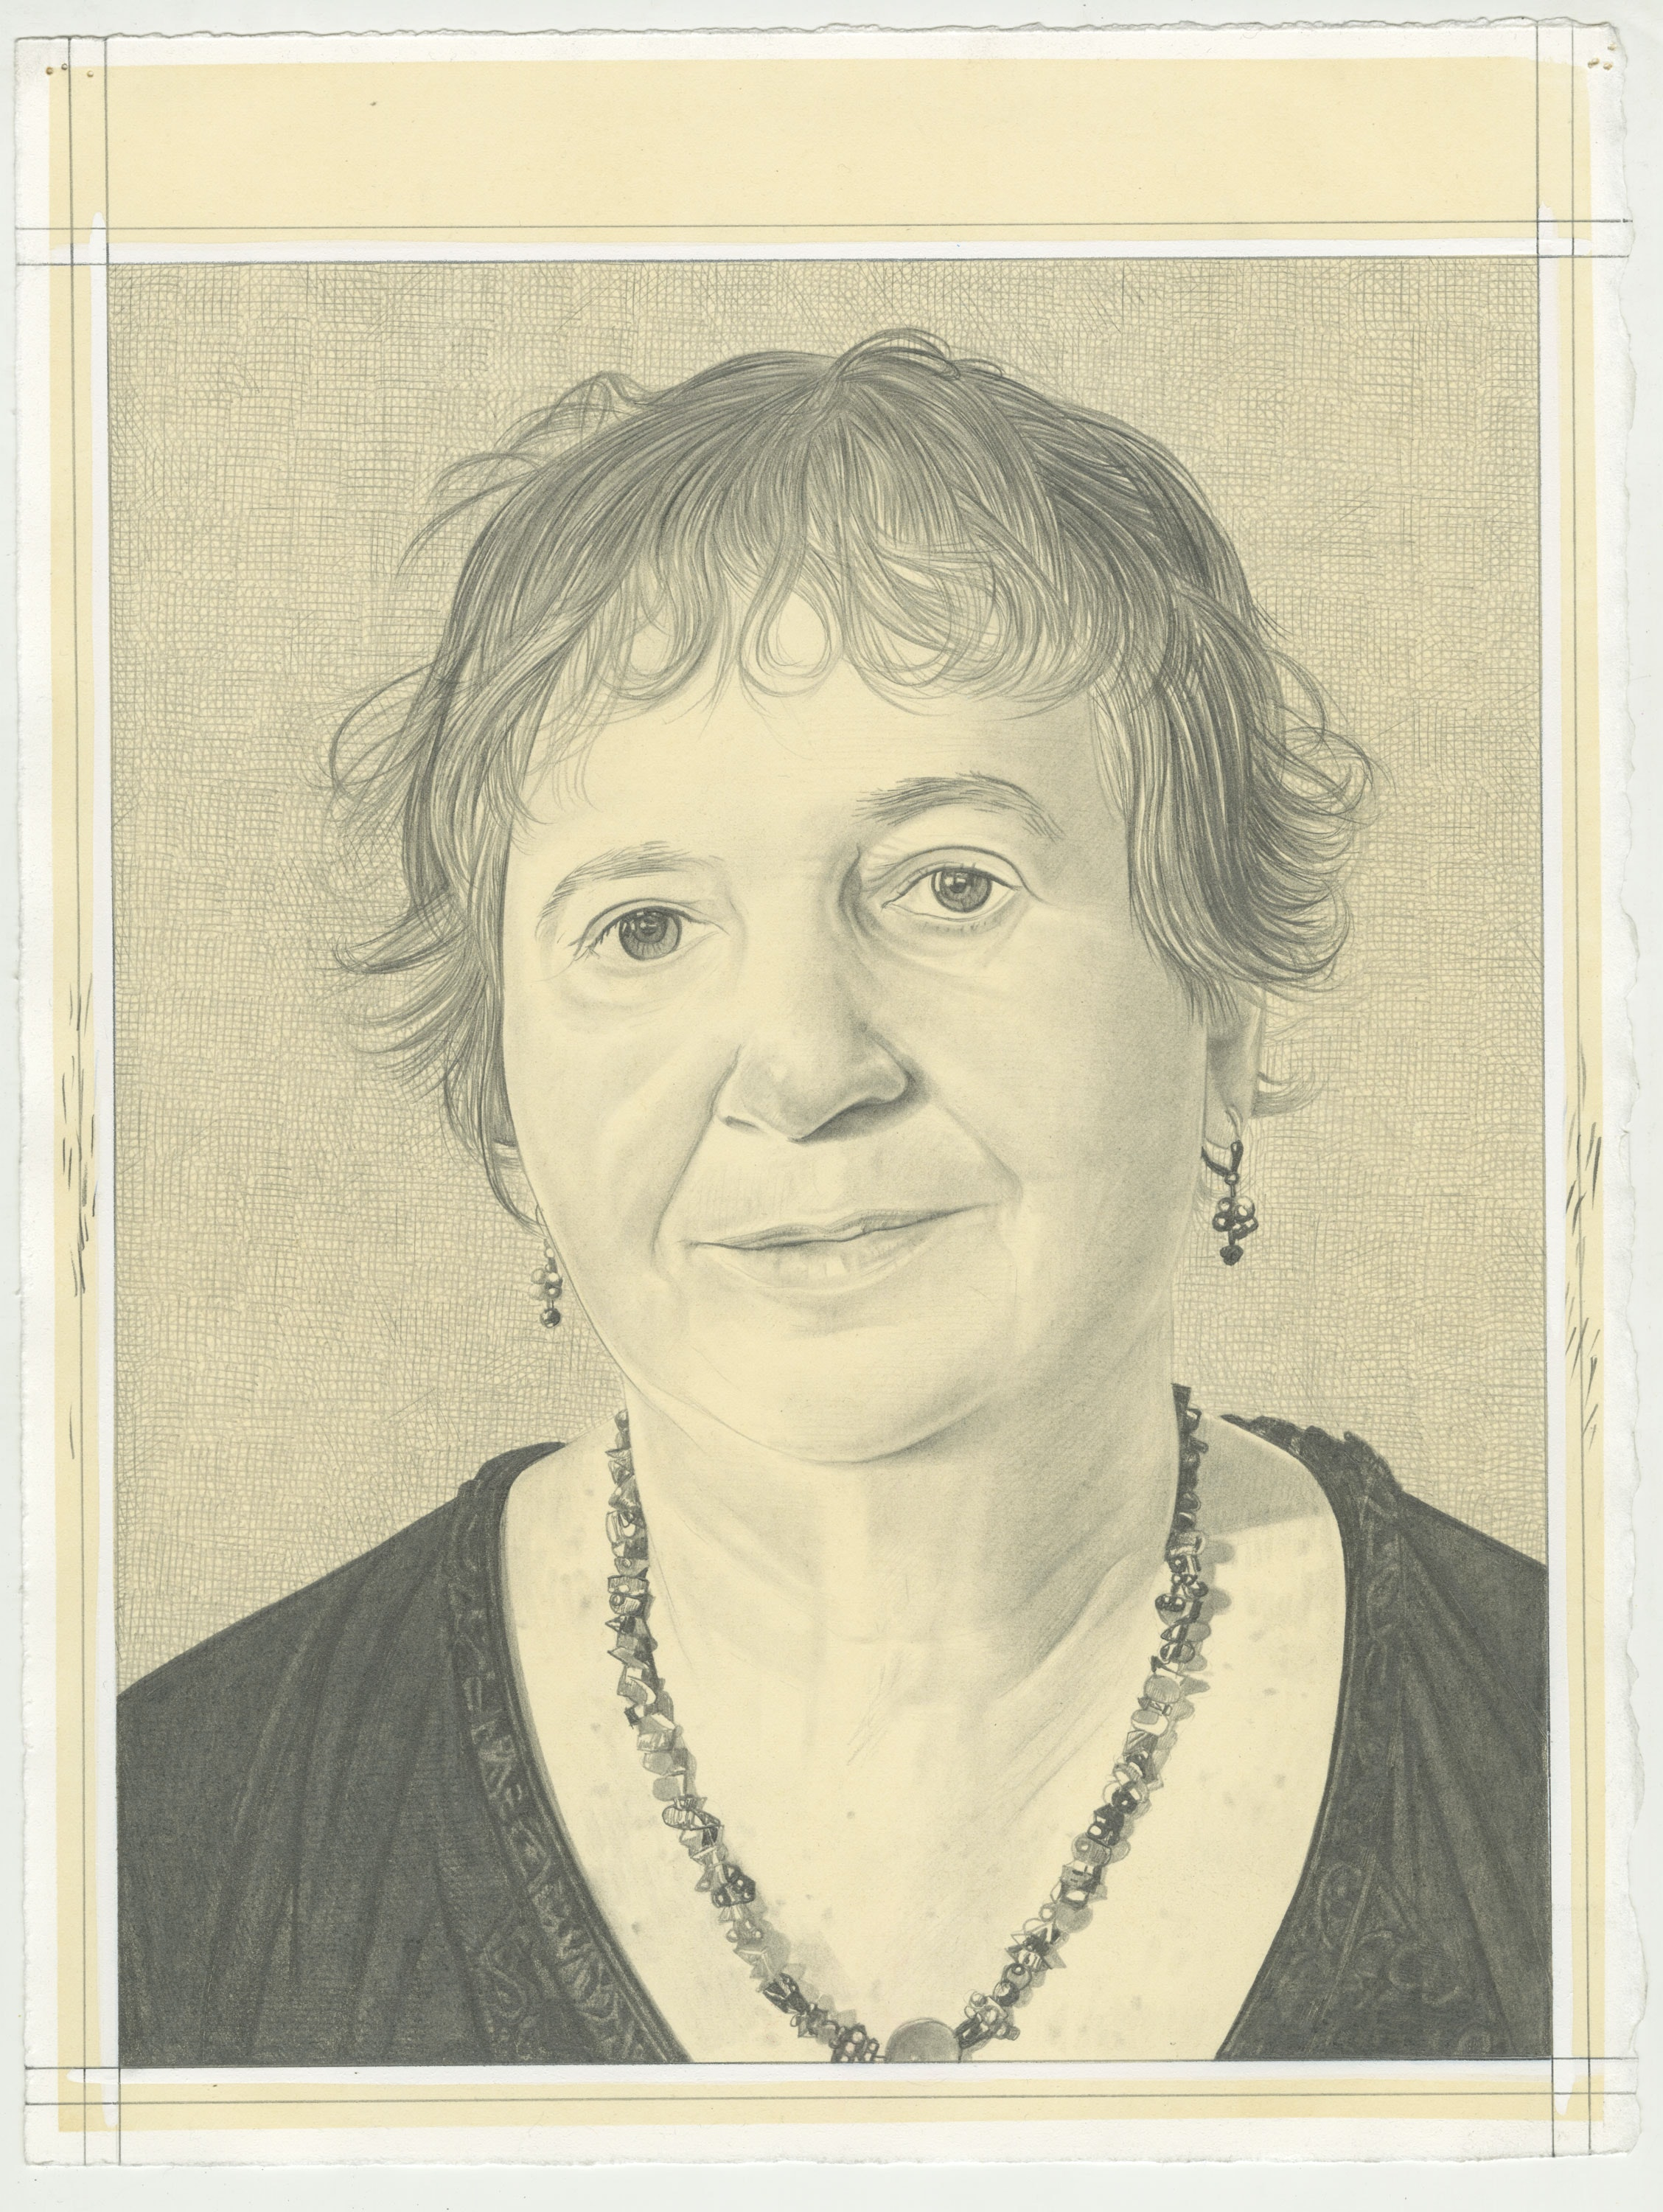 Portrait of Susan Bee, pencil on paper by Phong H. Bui.